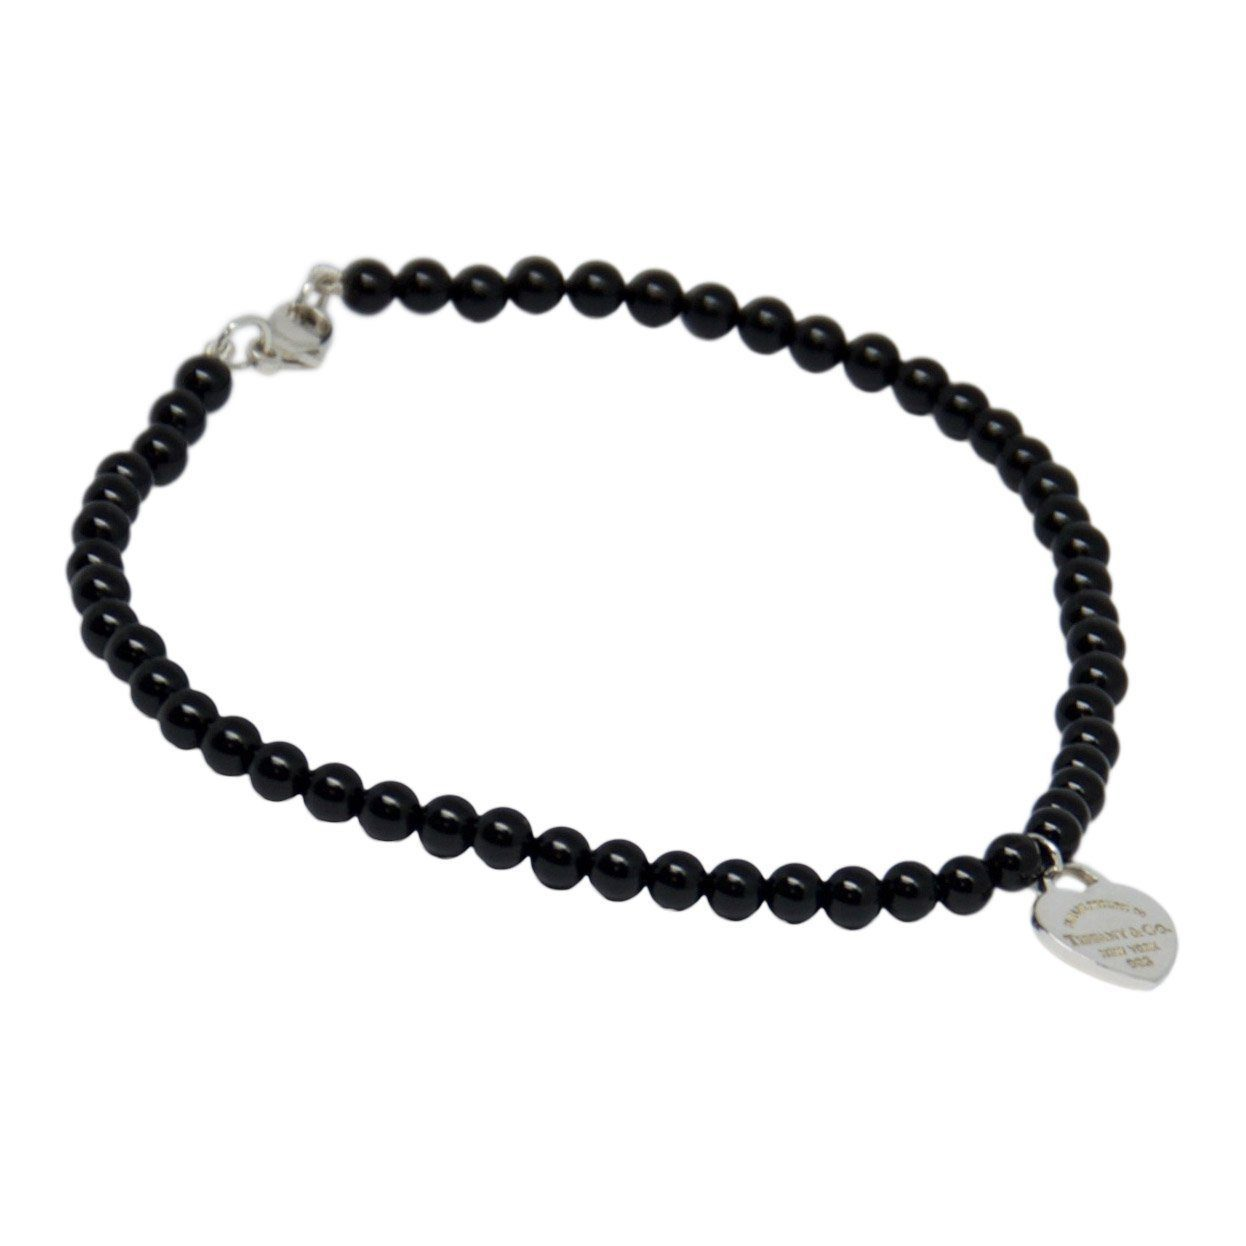 2a1cb10e3 Tiffany & Co. Return to Tiffany Mini Heart Tag Onyx Bead Bracelet Bracelets  Tiffany ...